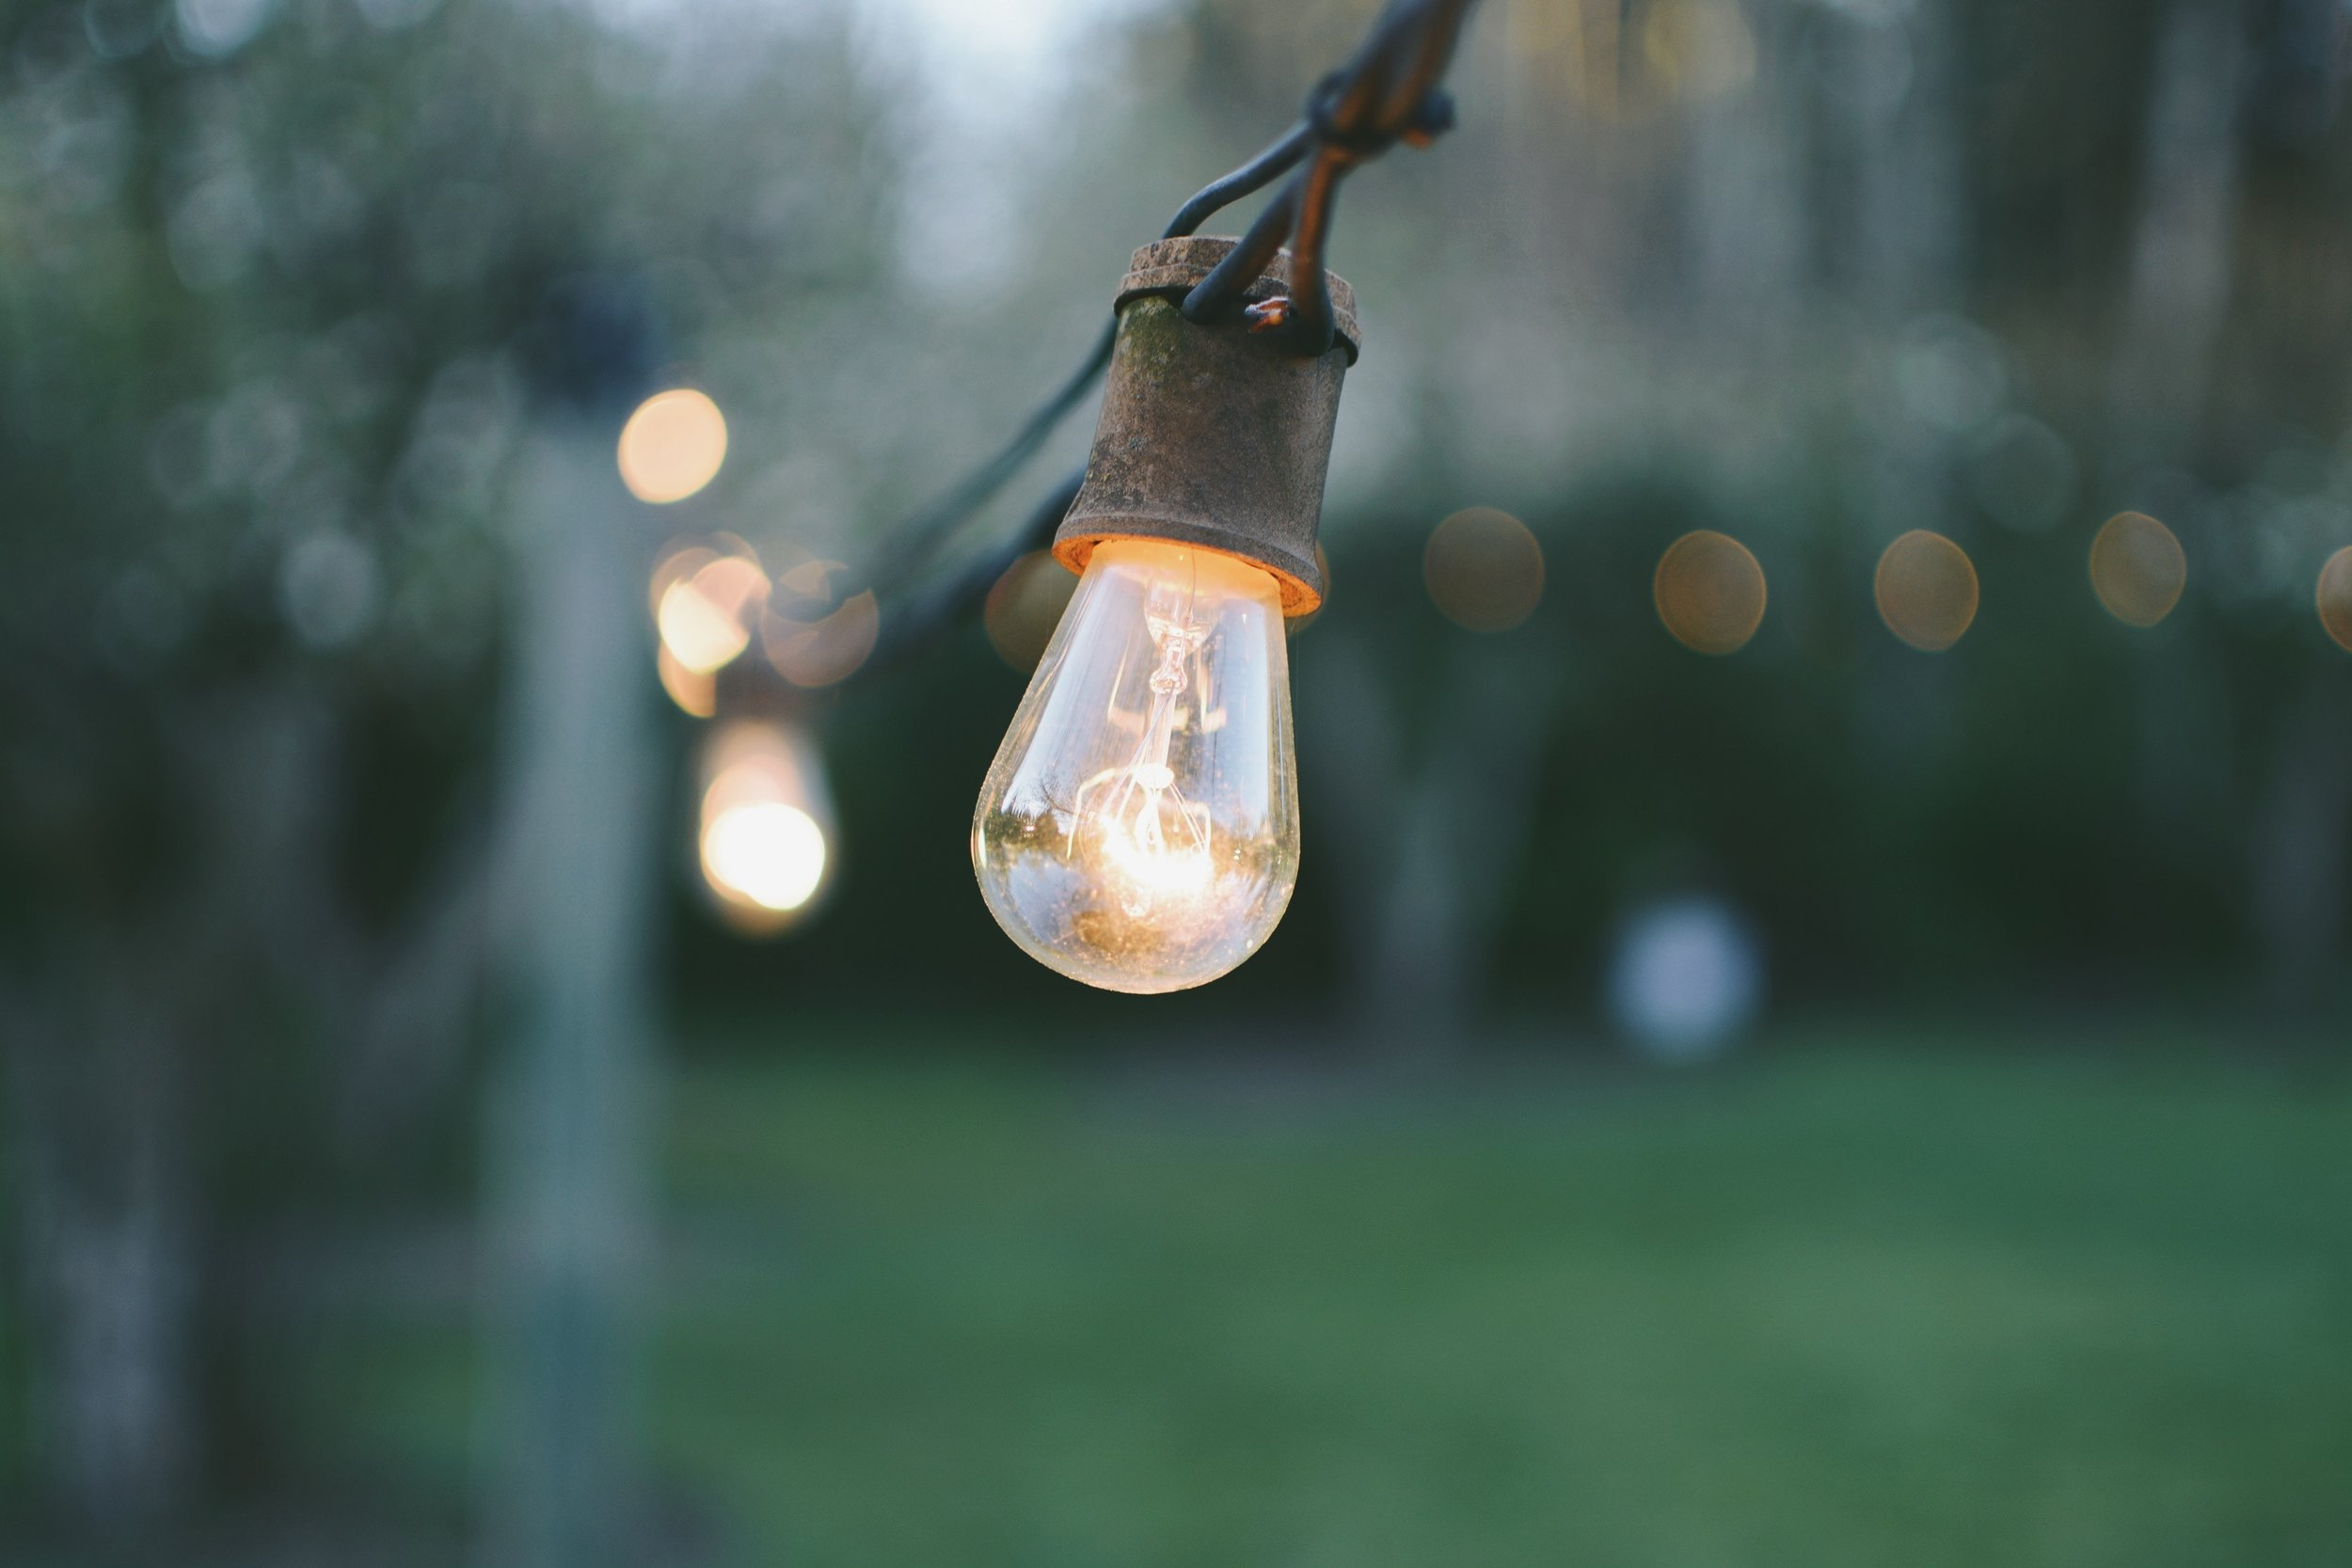 Got a bright idea? - Tell us what you thought of this article and the implications for practice in the comments below.